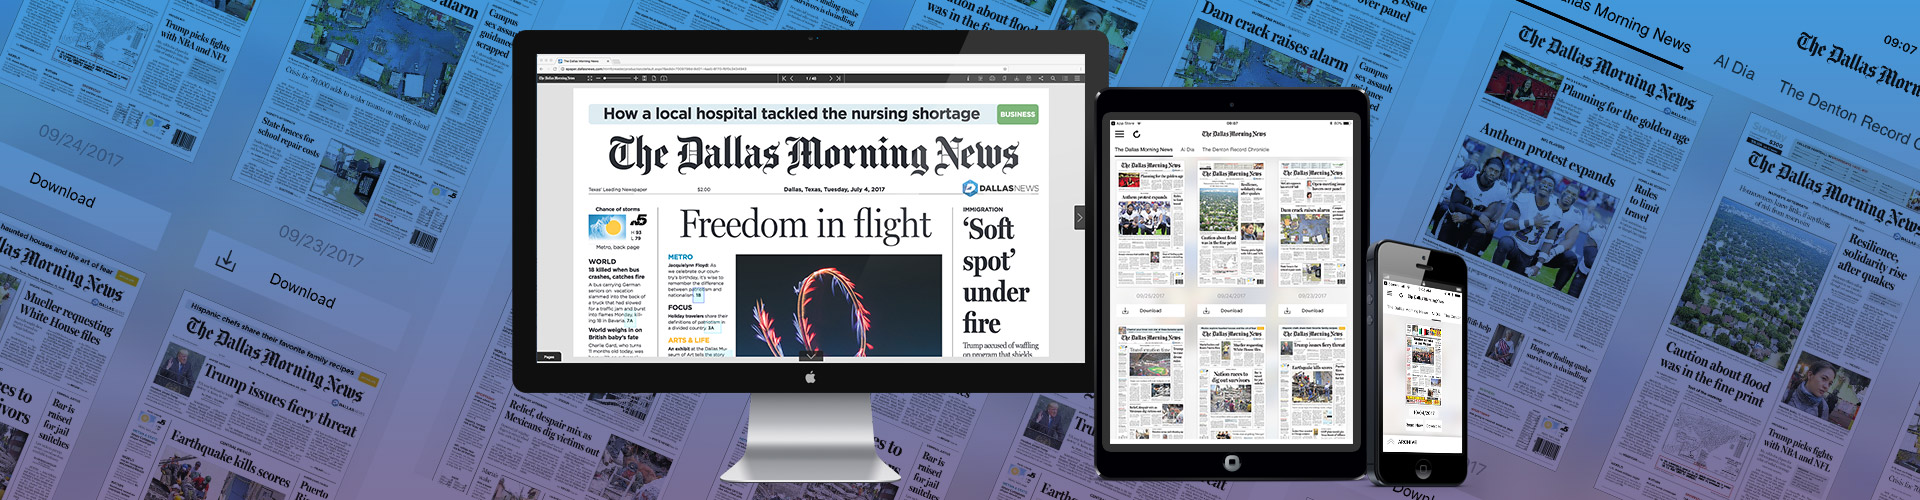 The Dallas Morning News launch new app and HTML5 desktop solution